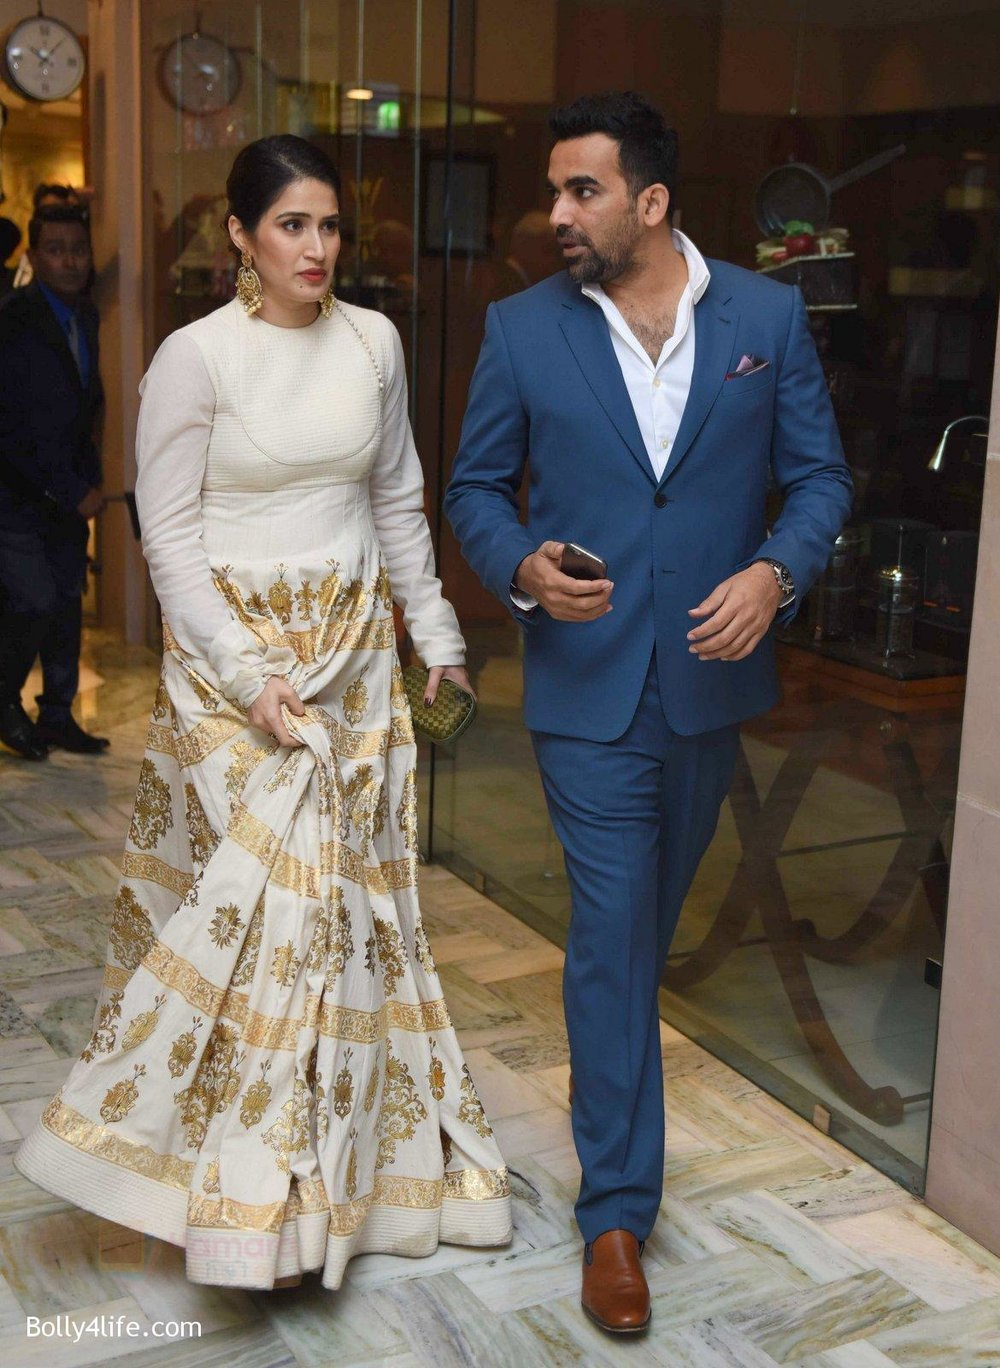 Zahir-Khan-Sagarika-Ghatge-at-Yuvraj-Singh-and-Hazel-Keech-Wedding-Reception-on-7th-Dec-2016.jpg